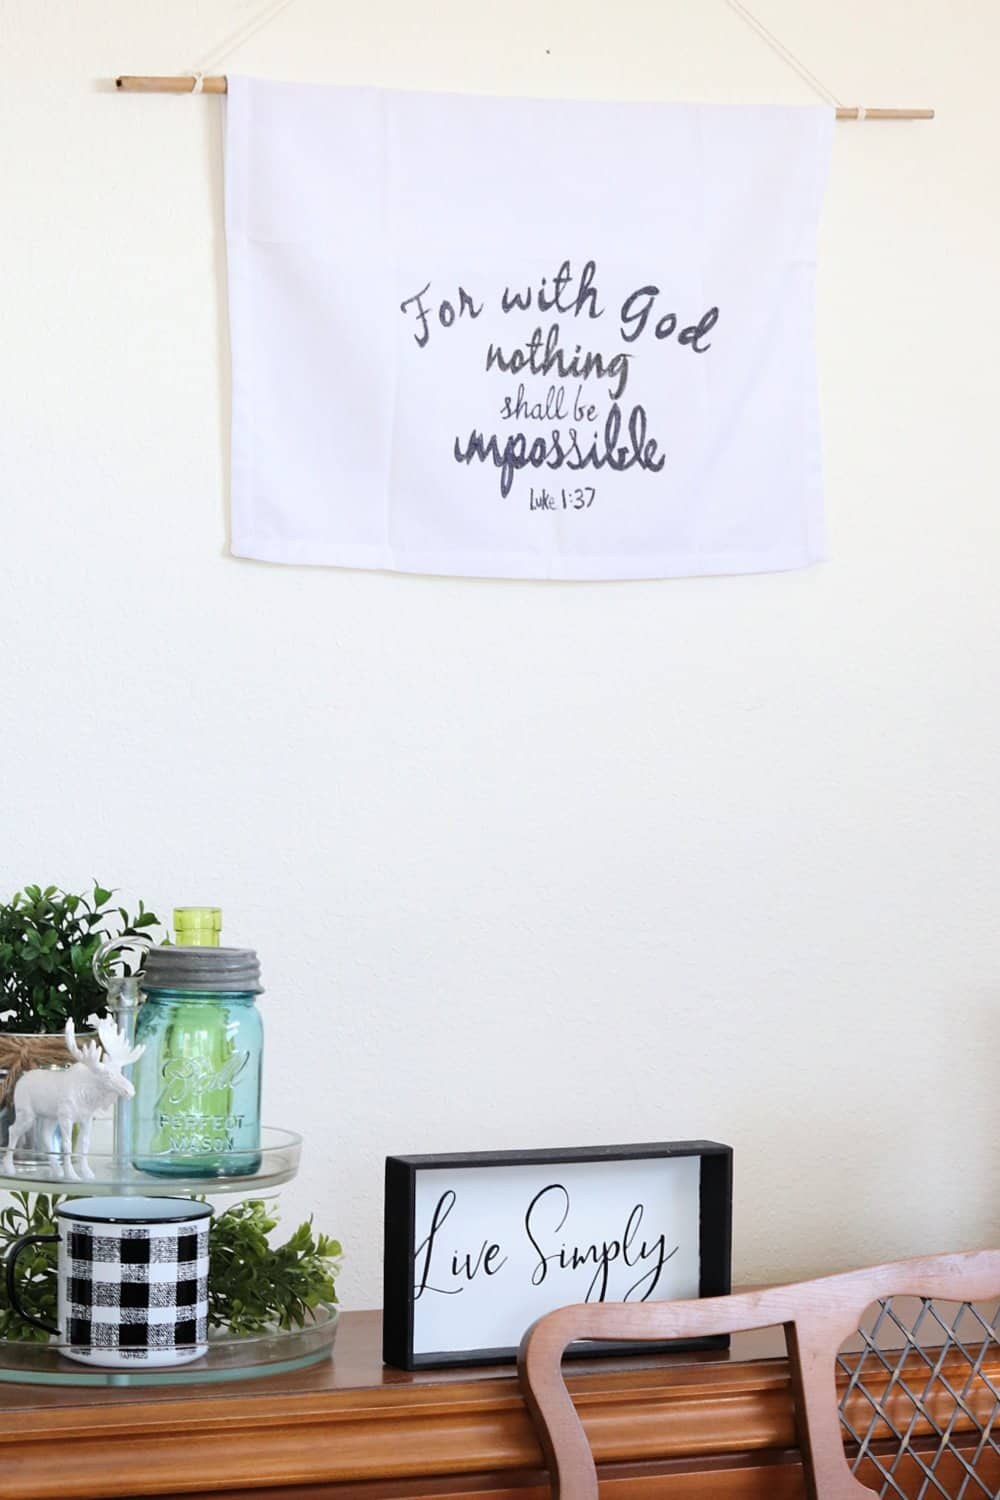 Upcycled fabrci wall hanging - for with God nothing shall be impossible Luke 1 37